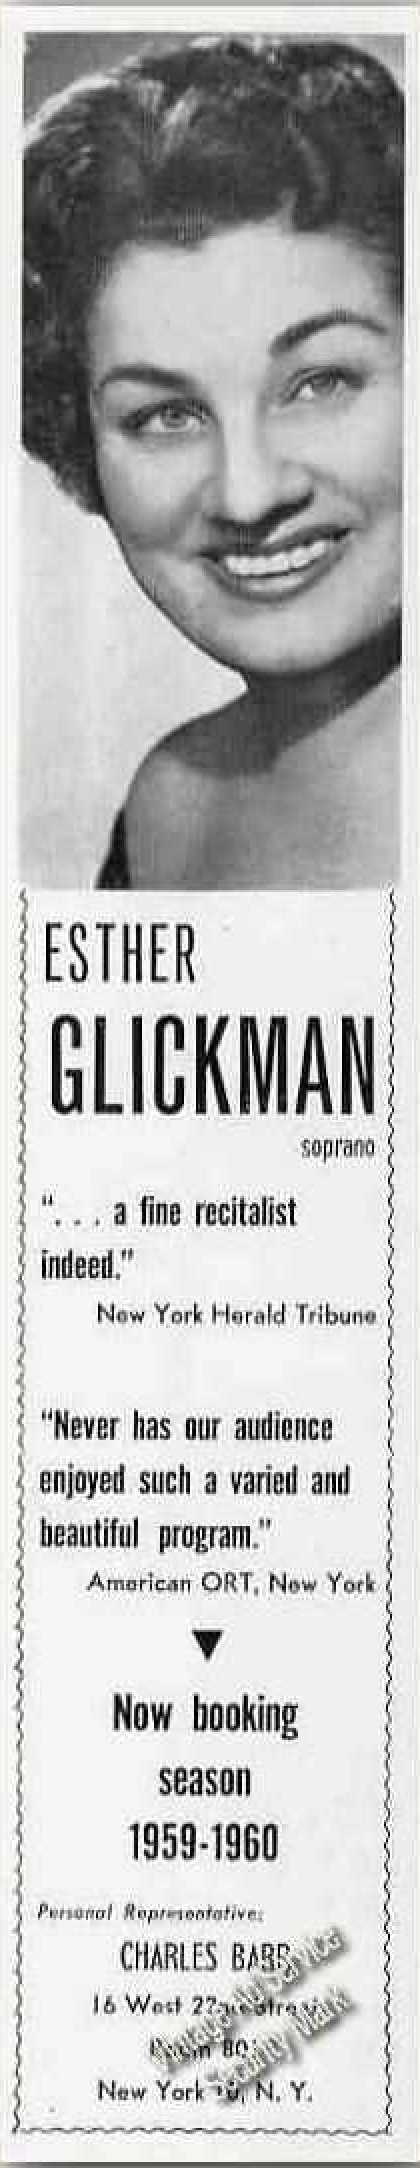 Esther Glickman Photo Soprano Booking (1959)